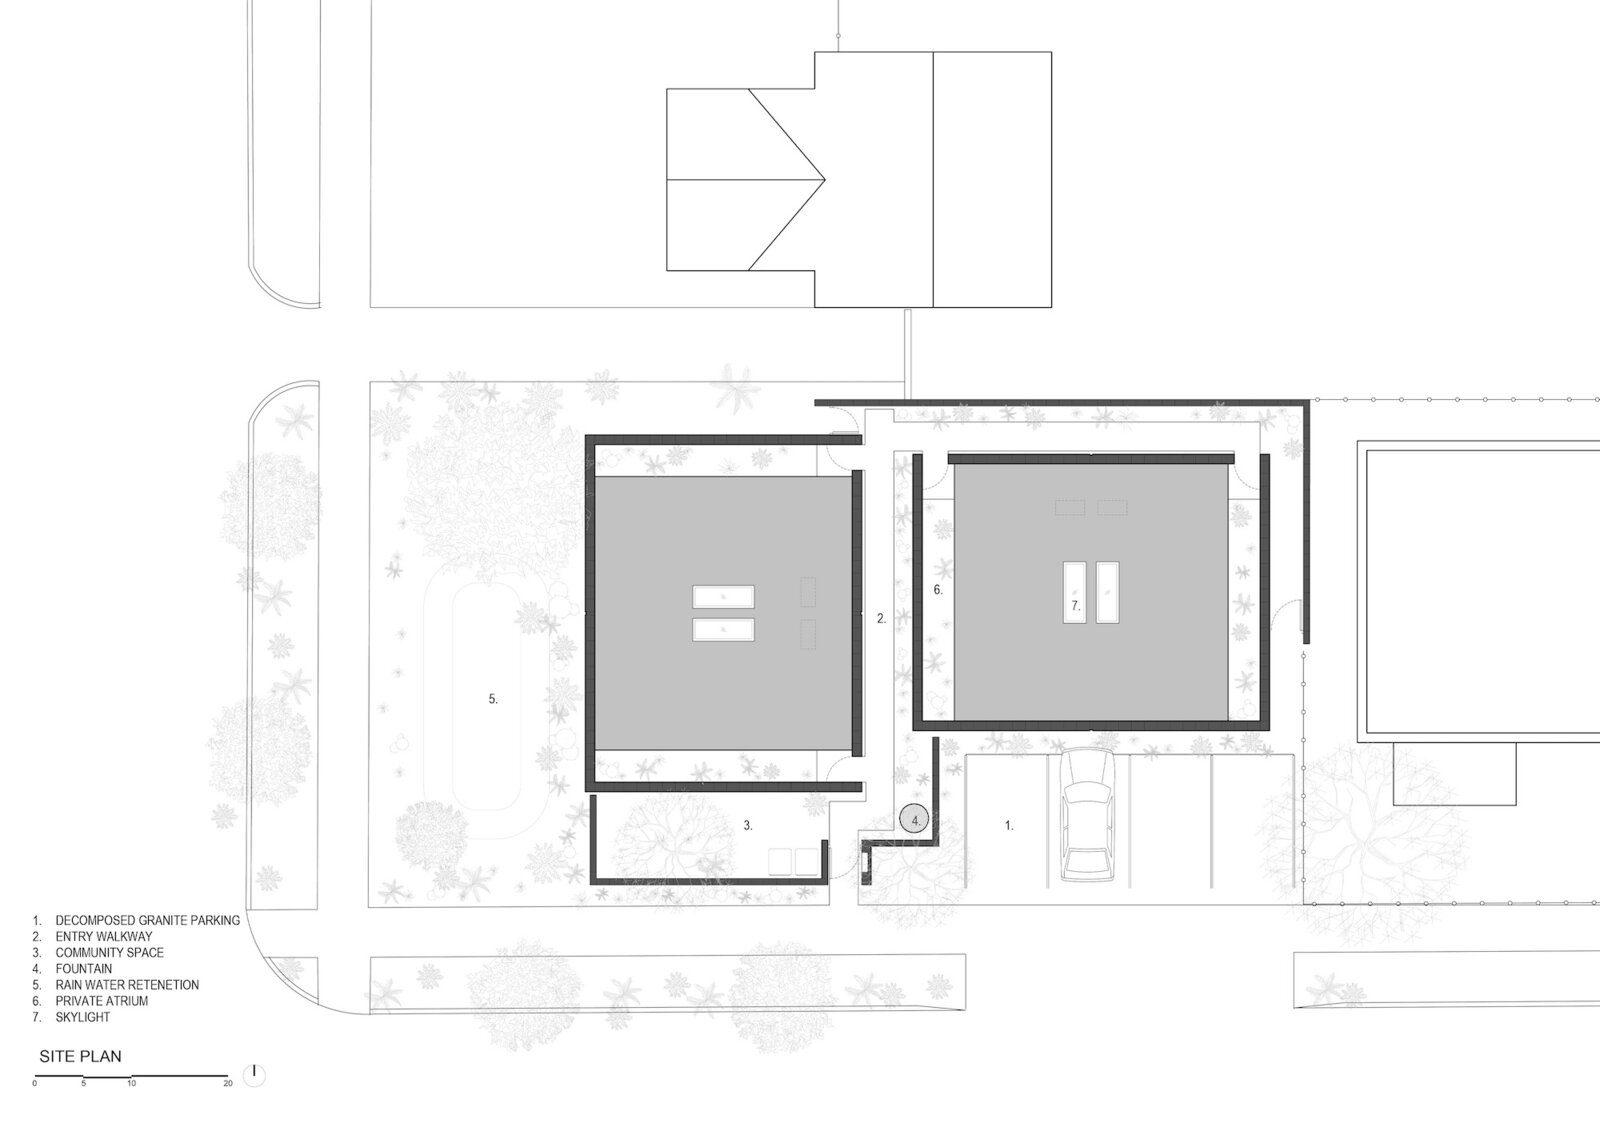 Site plan of White Stone Flats by Benjamin Hall Design.